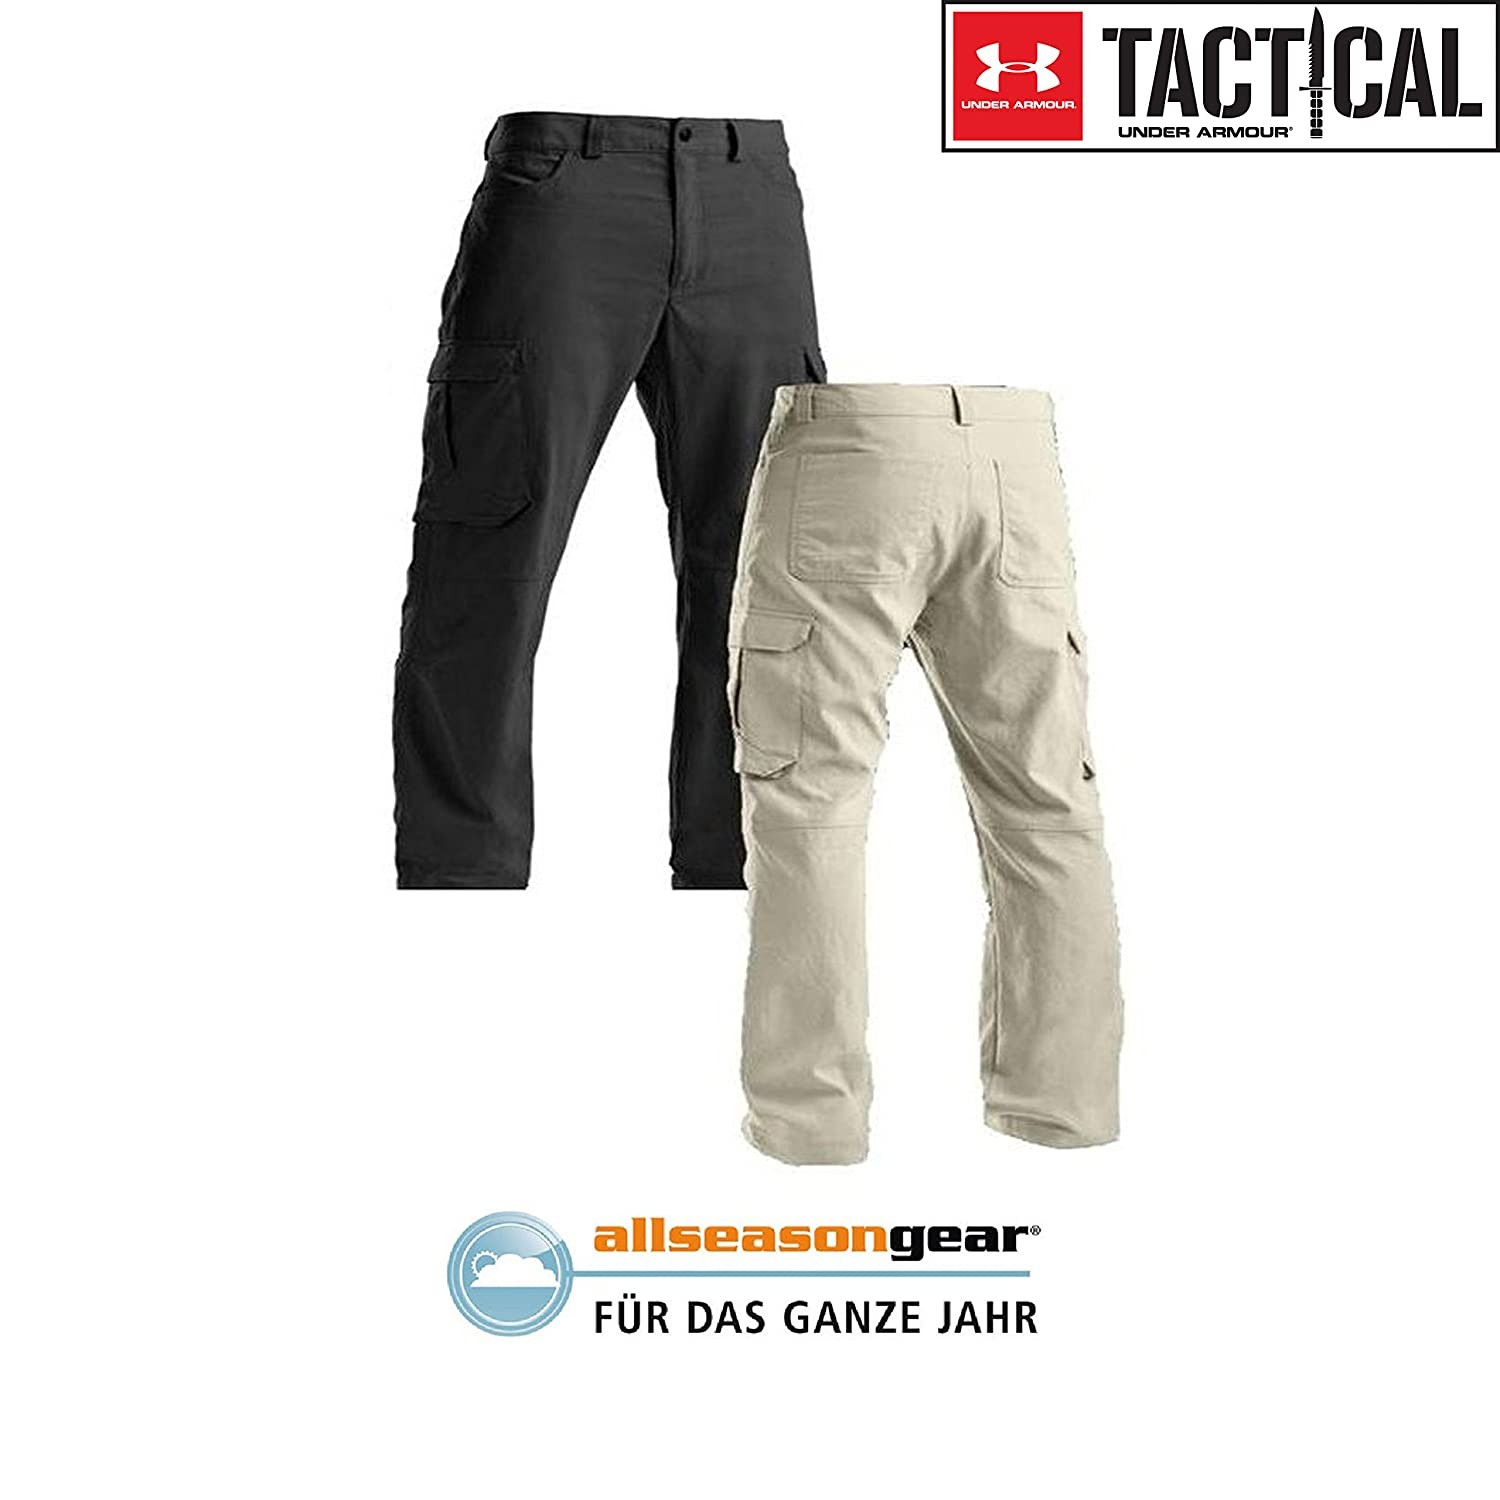 Tac Nylon Pantaloni Pantaloni Fitness e palestra Under Armour